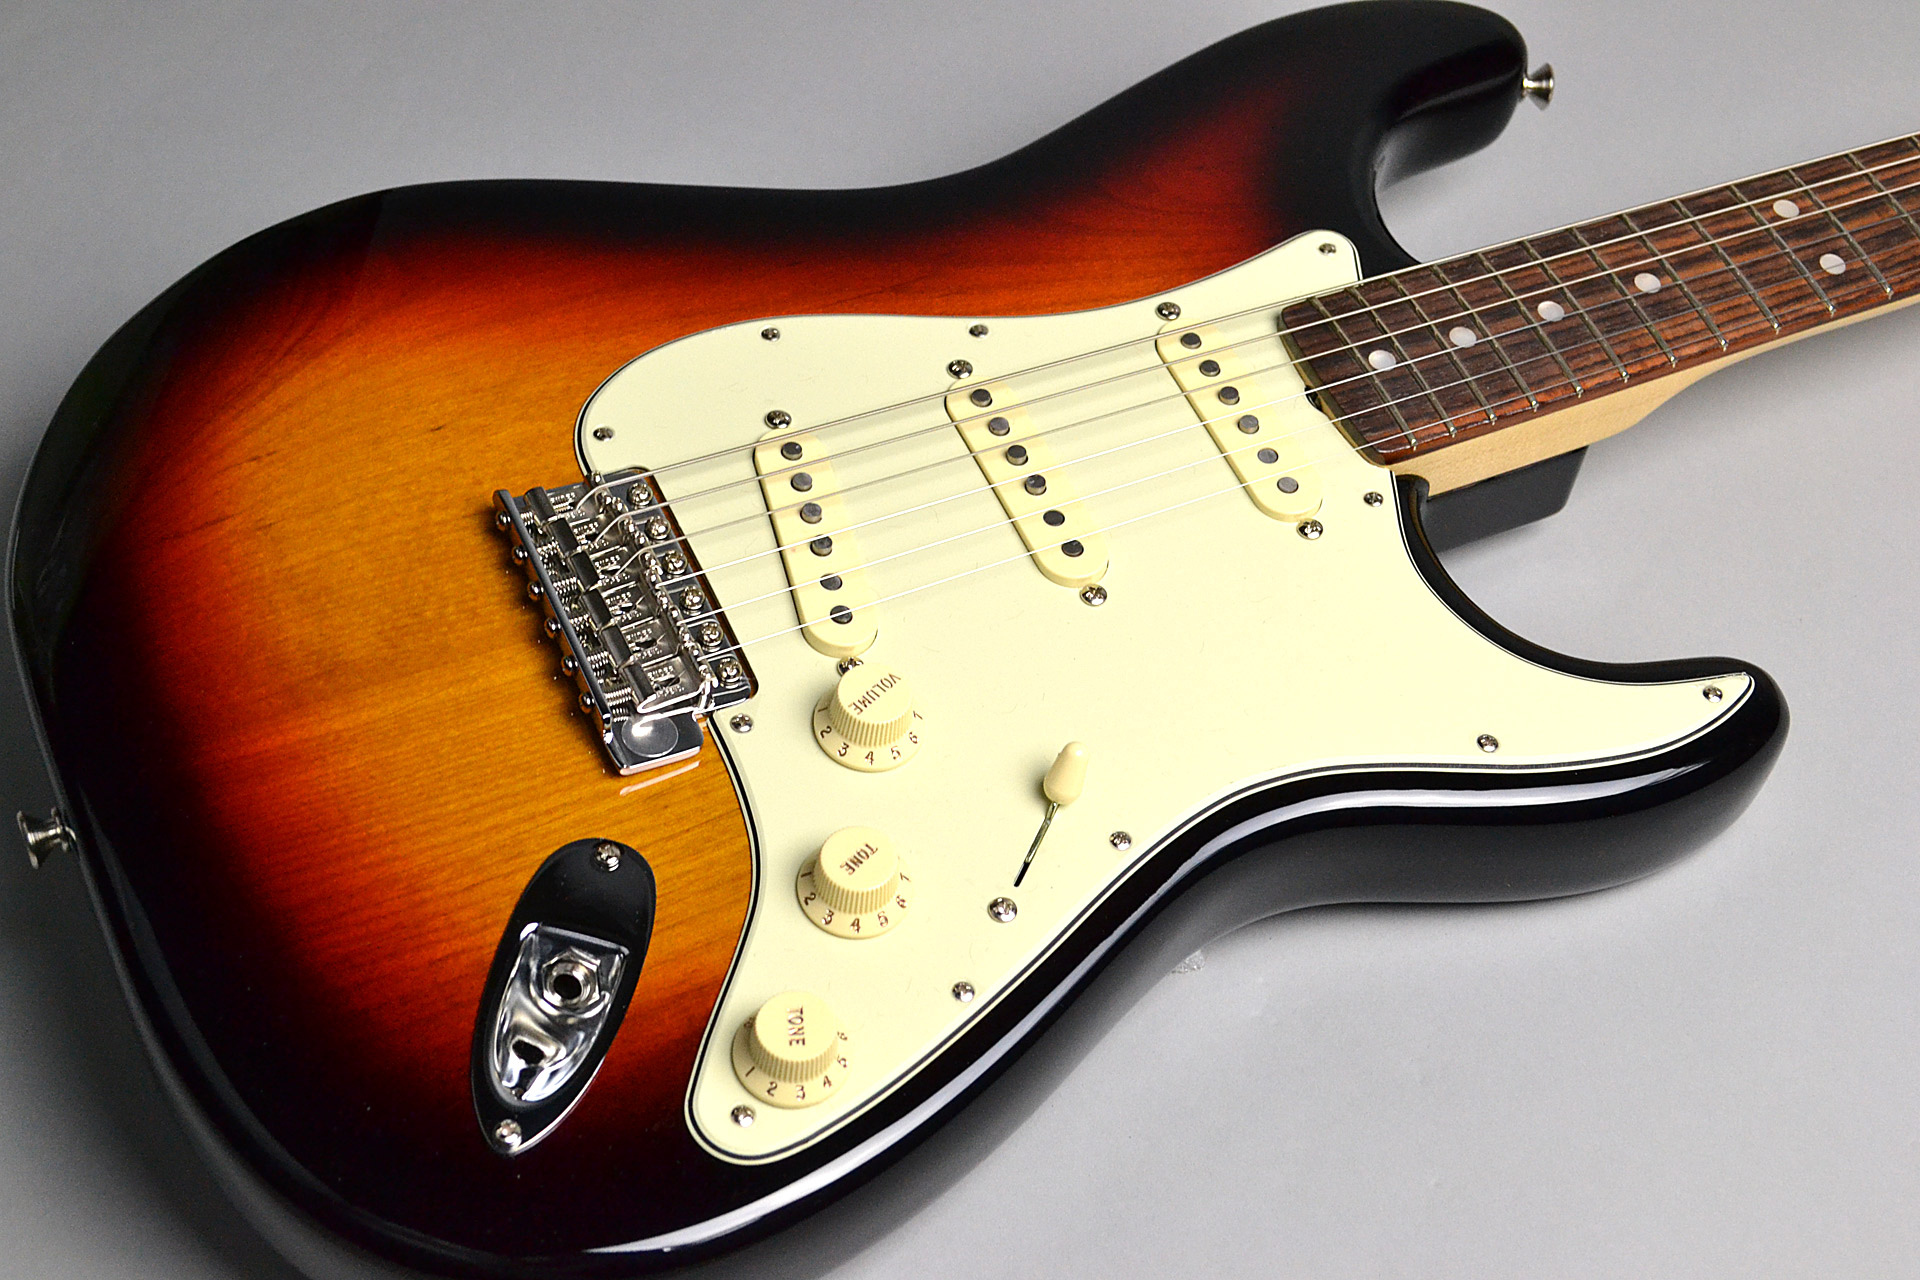 American Original '60s Stratocaster 3-Color Sunburstのボディトップ-アップ画像